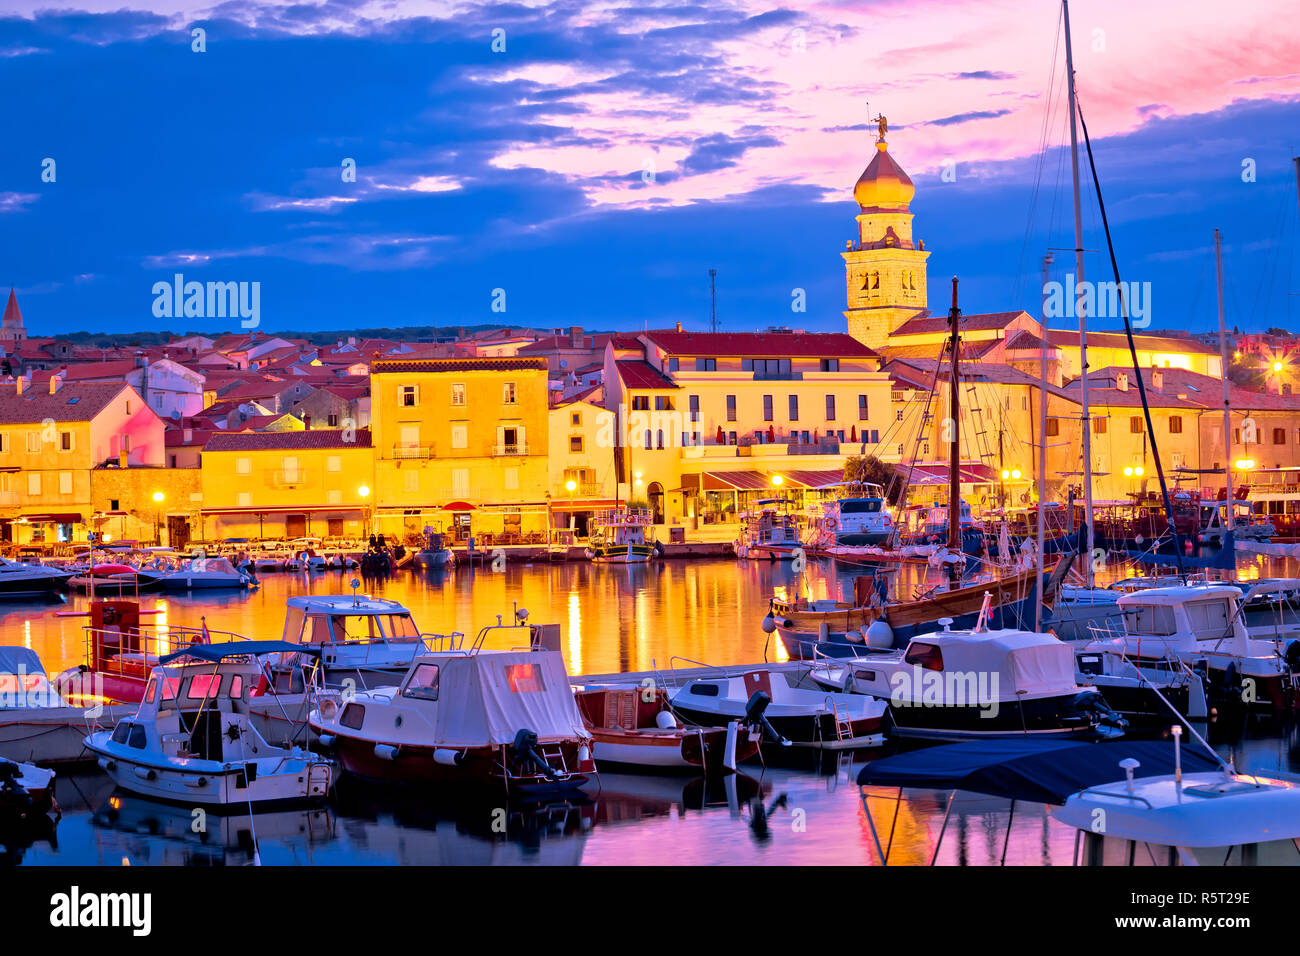 Historic island town of Krk dawn waterfront view Stock Photo